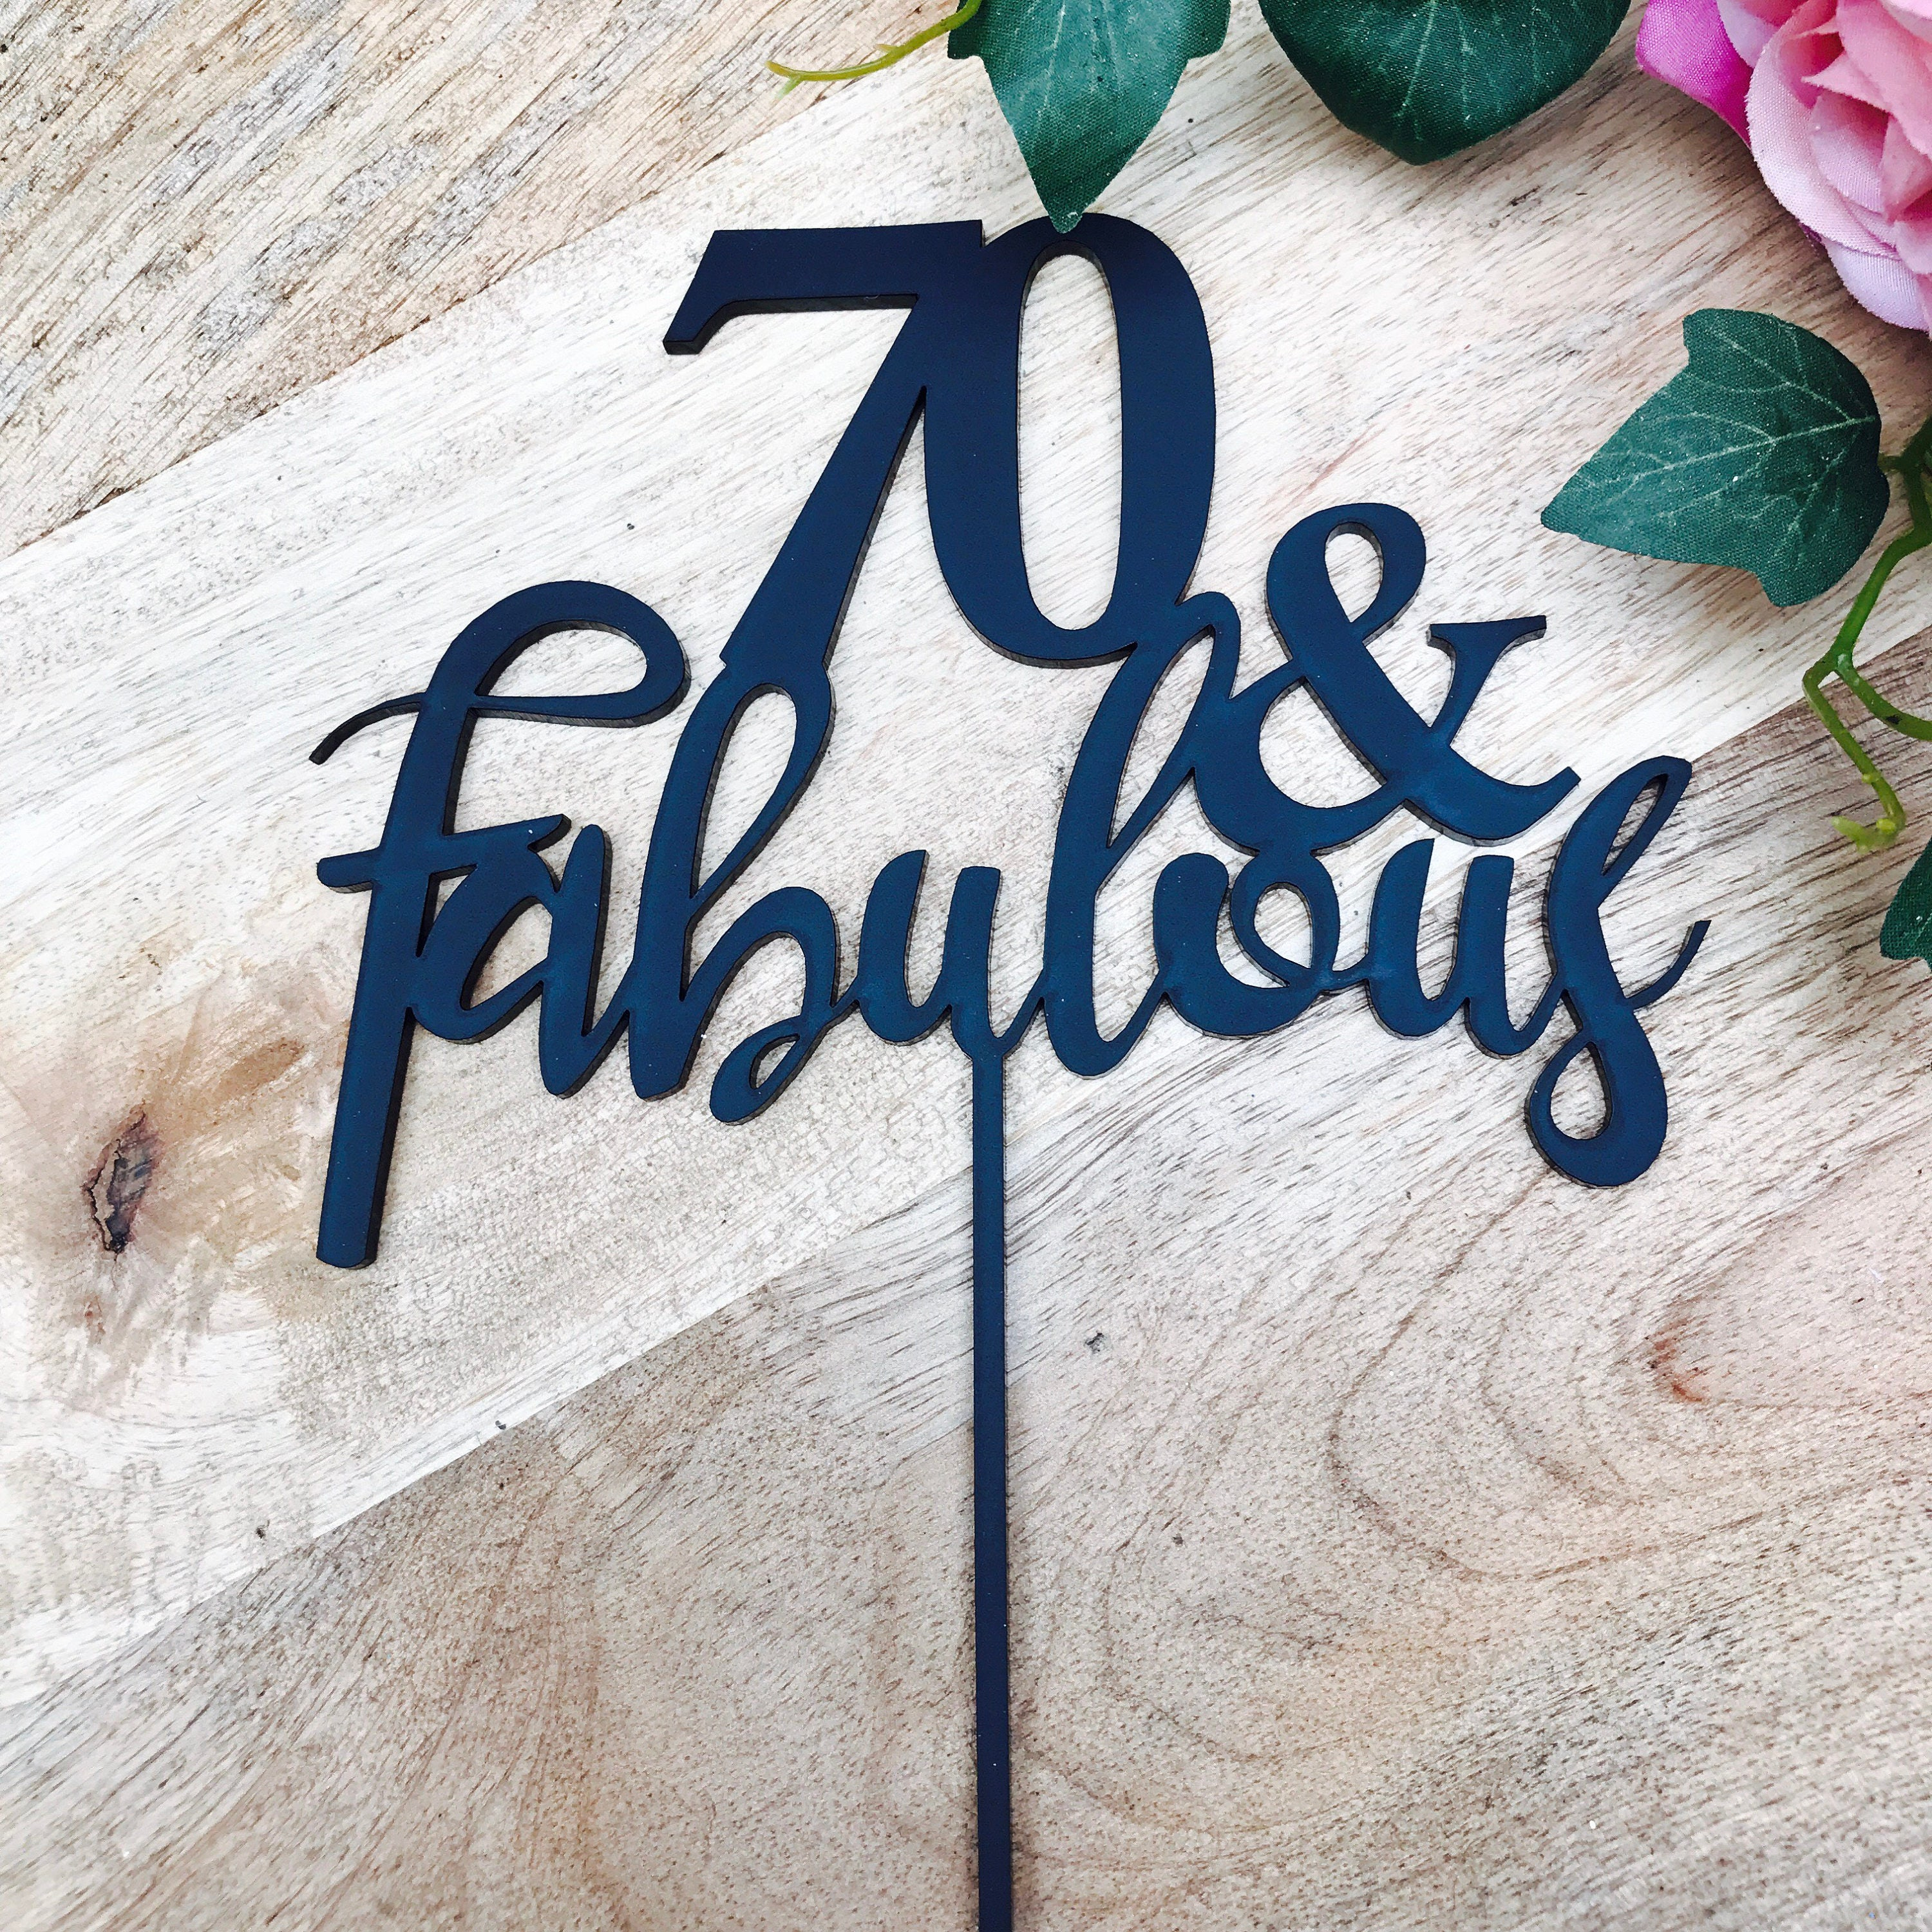 Fab At 70: 70 & Fabulous Cake Topper 70th Birthday Cake Topper Cake